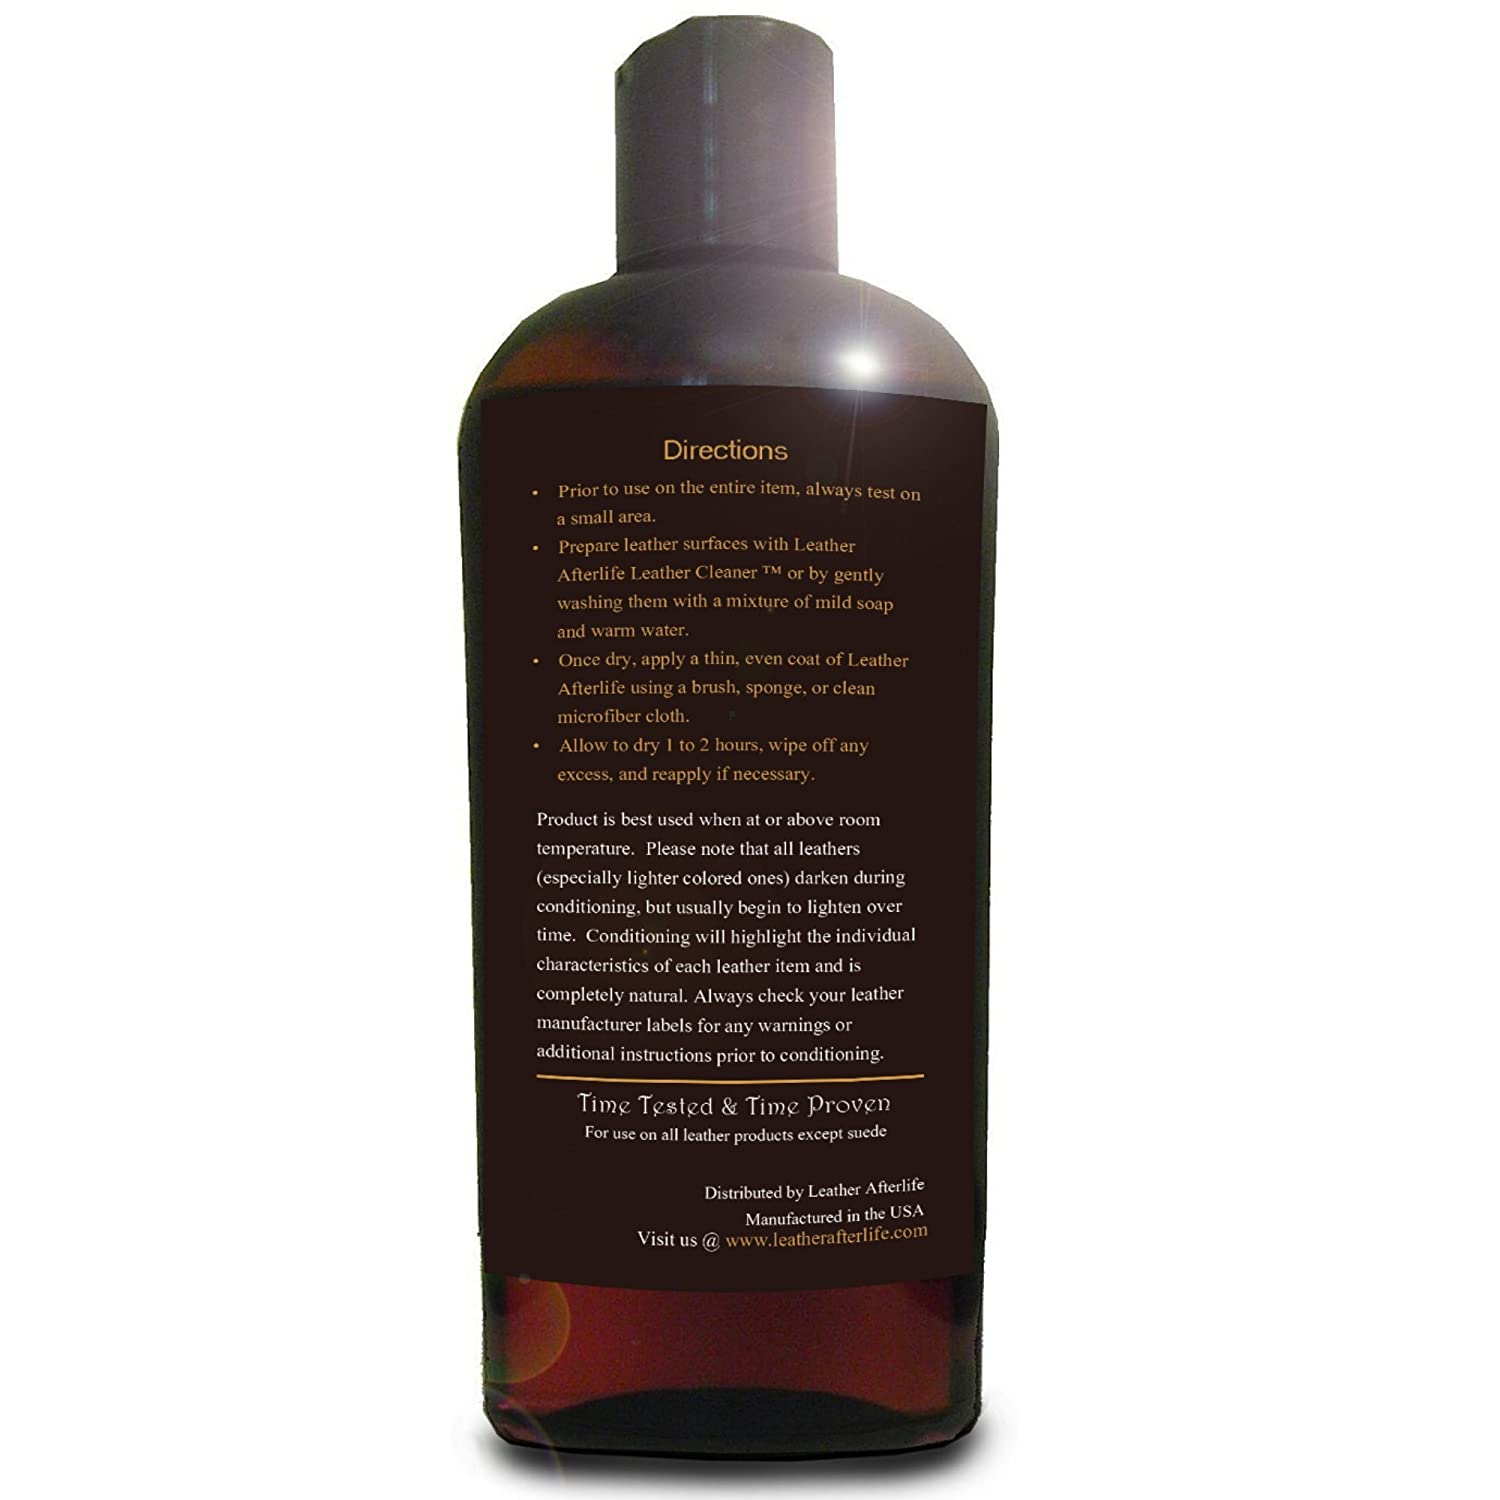 Amazon.com: Leather Afterlife Leather Conditioner - The Best ...